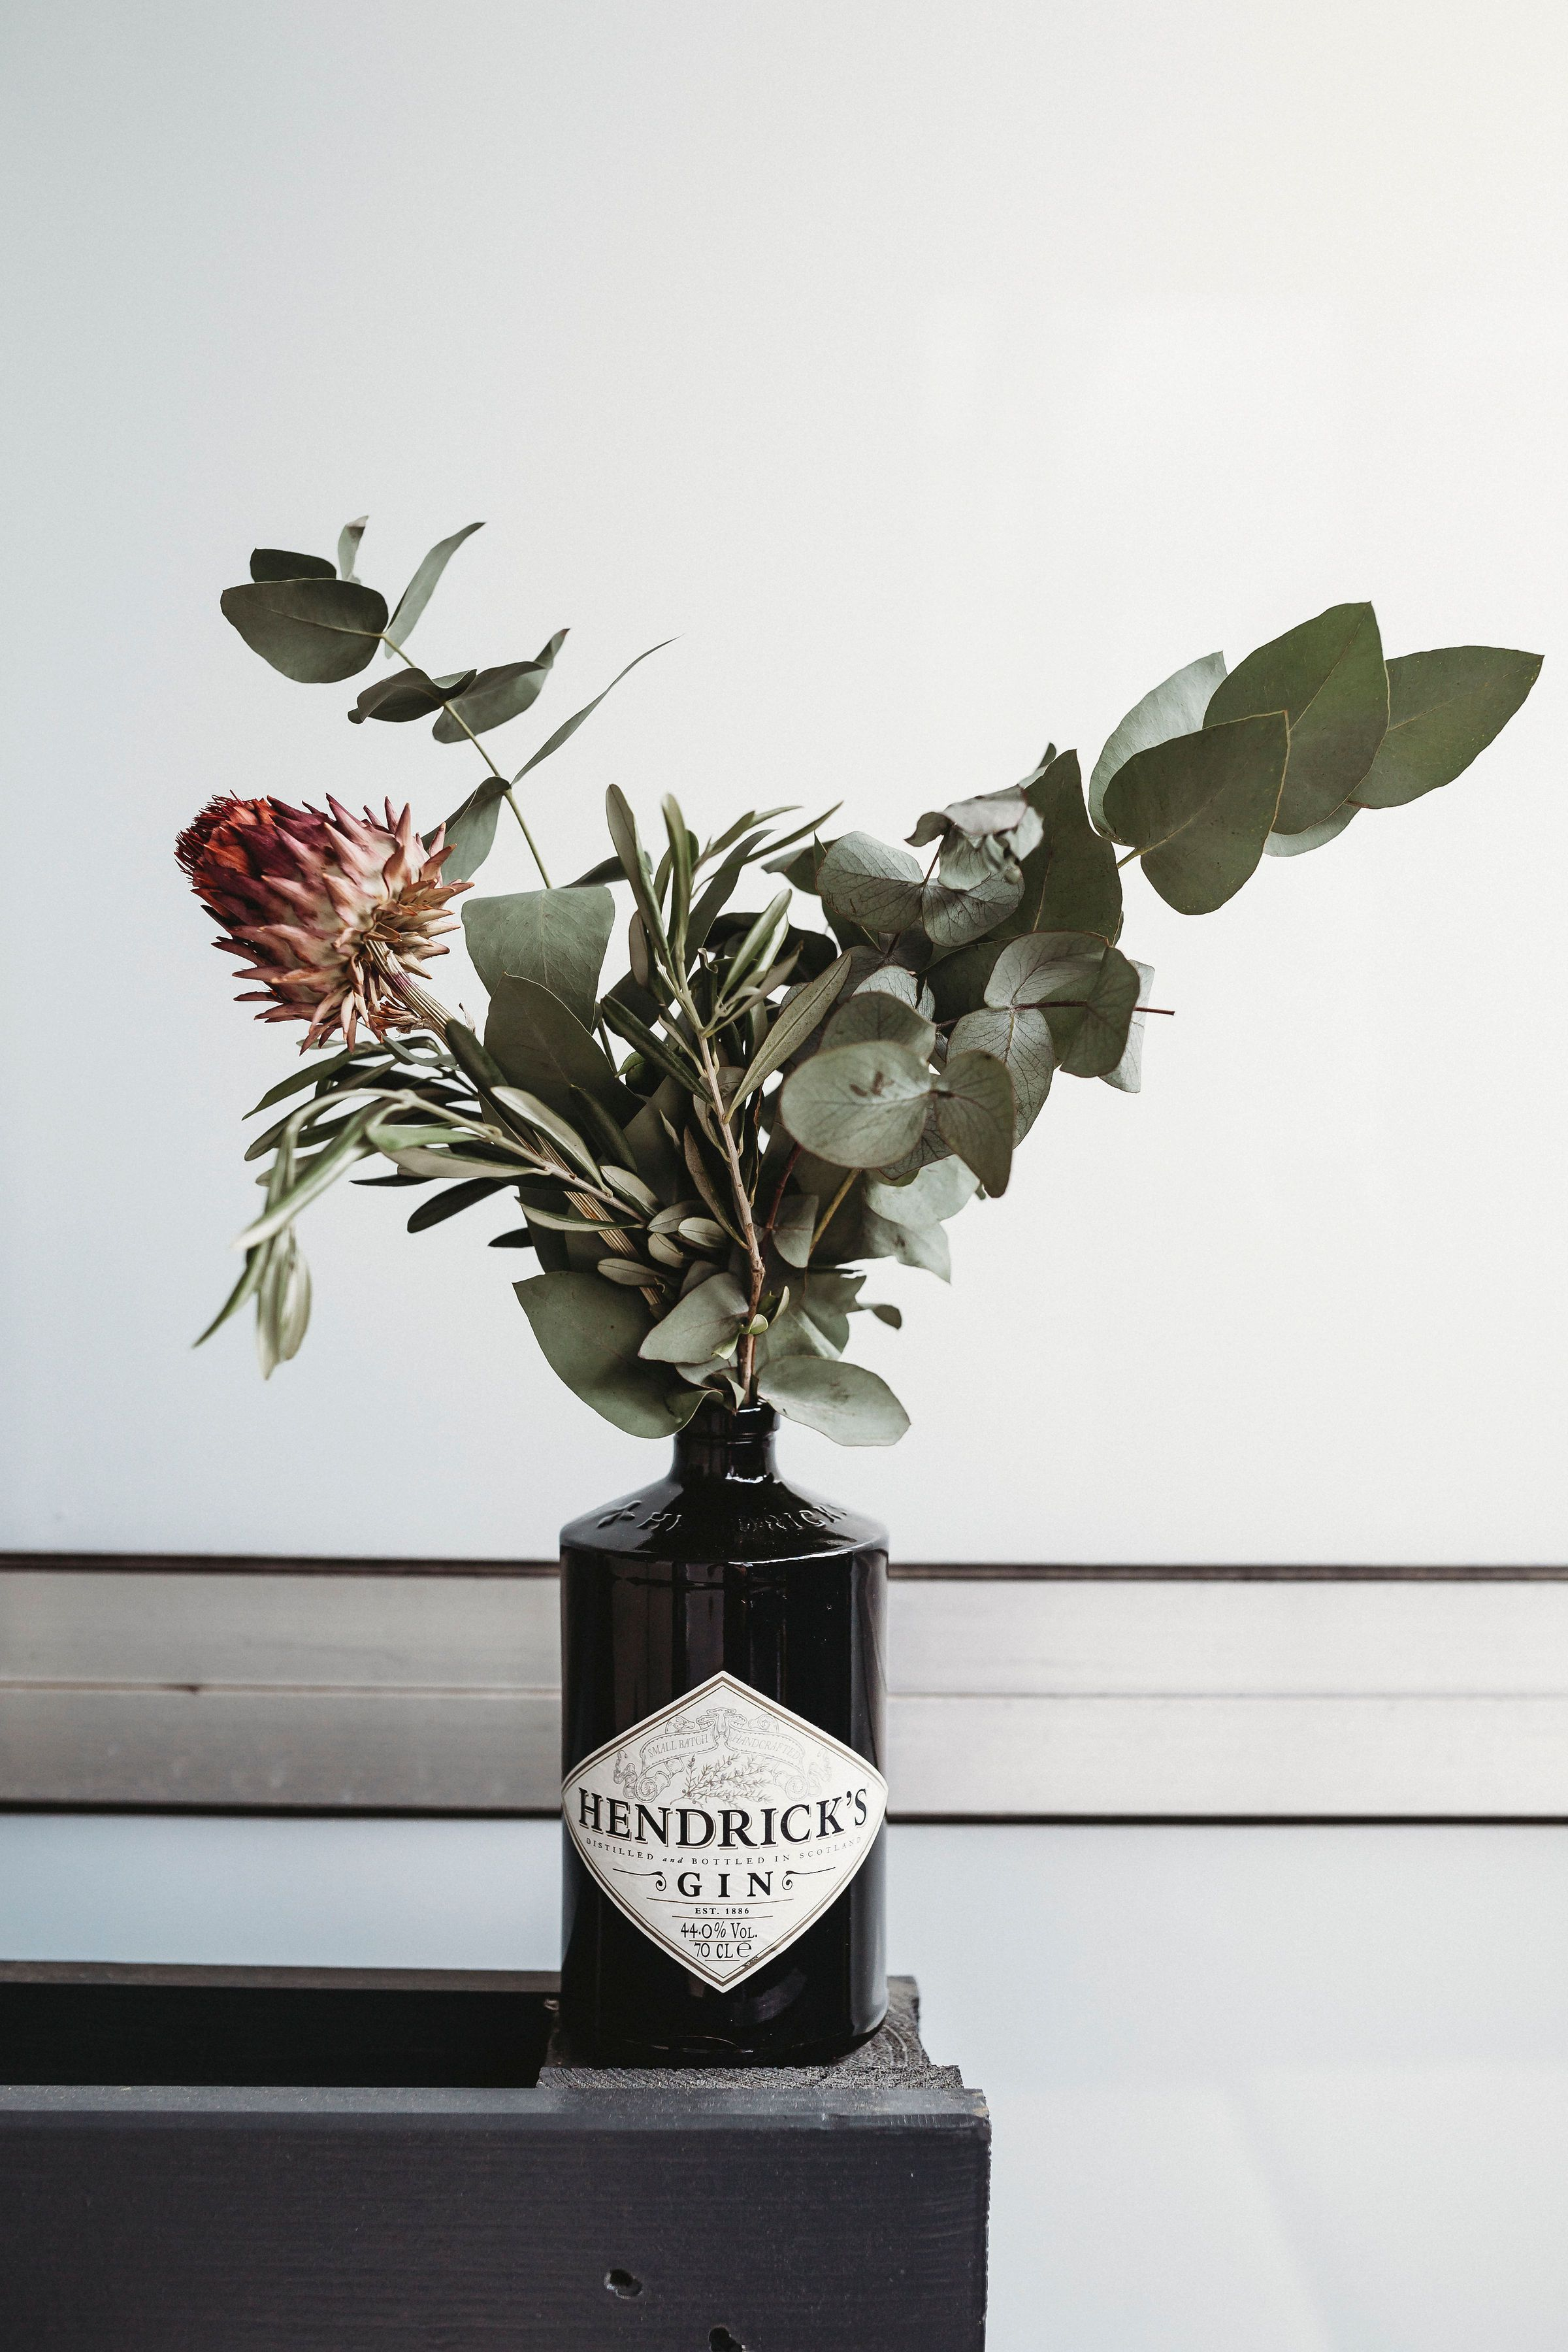 Photo of Eukalyptus, Olive, Trockenblumen in Hendrick's Gin Flasche